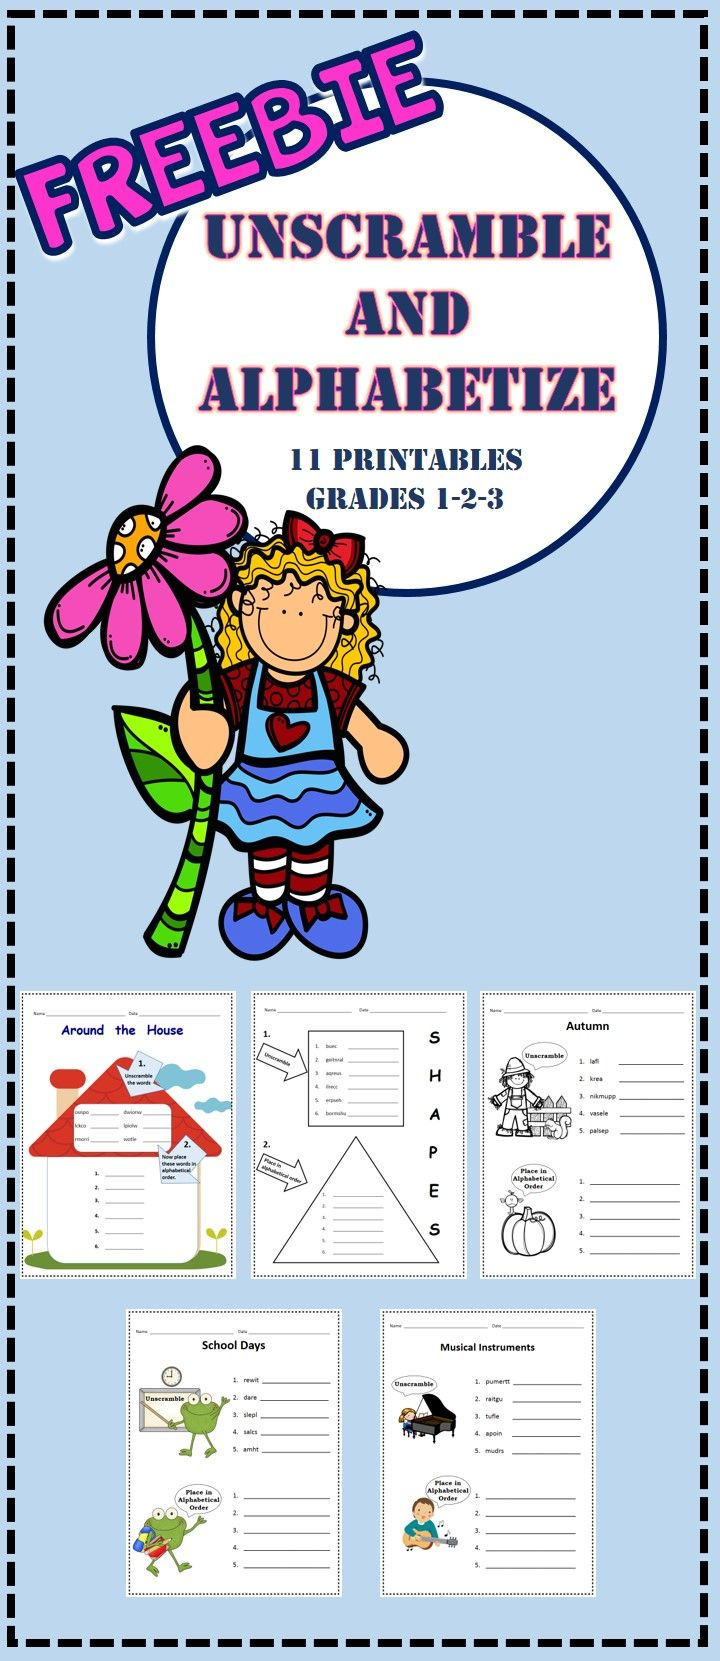 Freebie 11 No Prep Printables Unscramble Words And Place Into Alphabetical Order Grades 1 2 3 Third Grade Sight Words Literacy Activities Creative Teaching [ 1661 x 720 Pixel ]